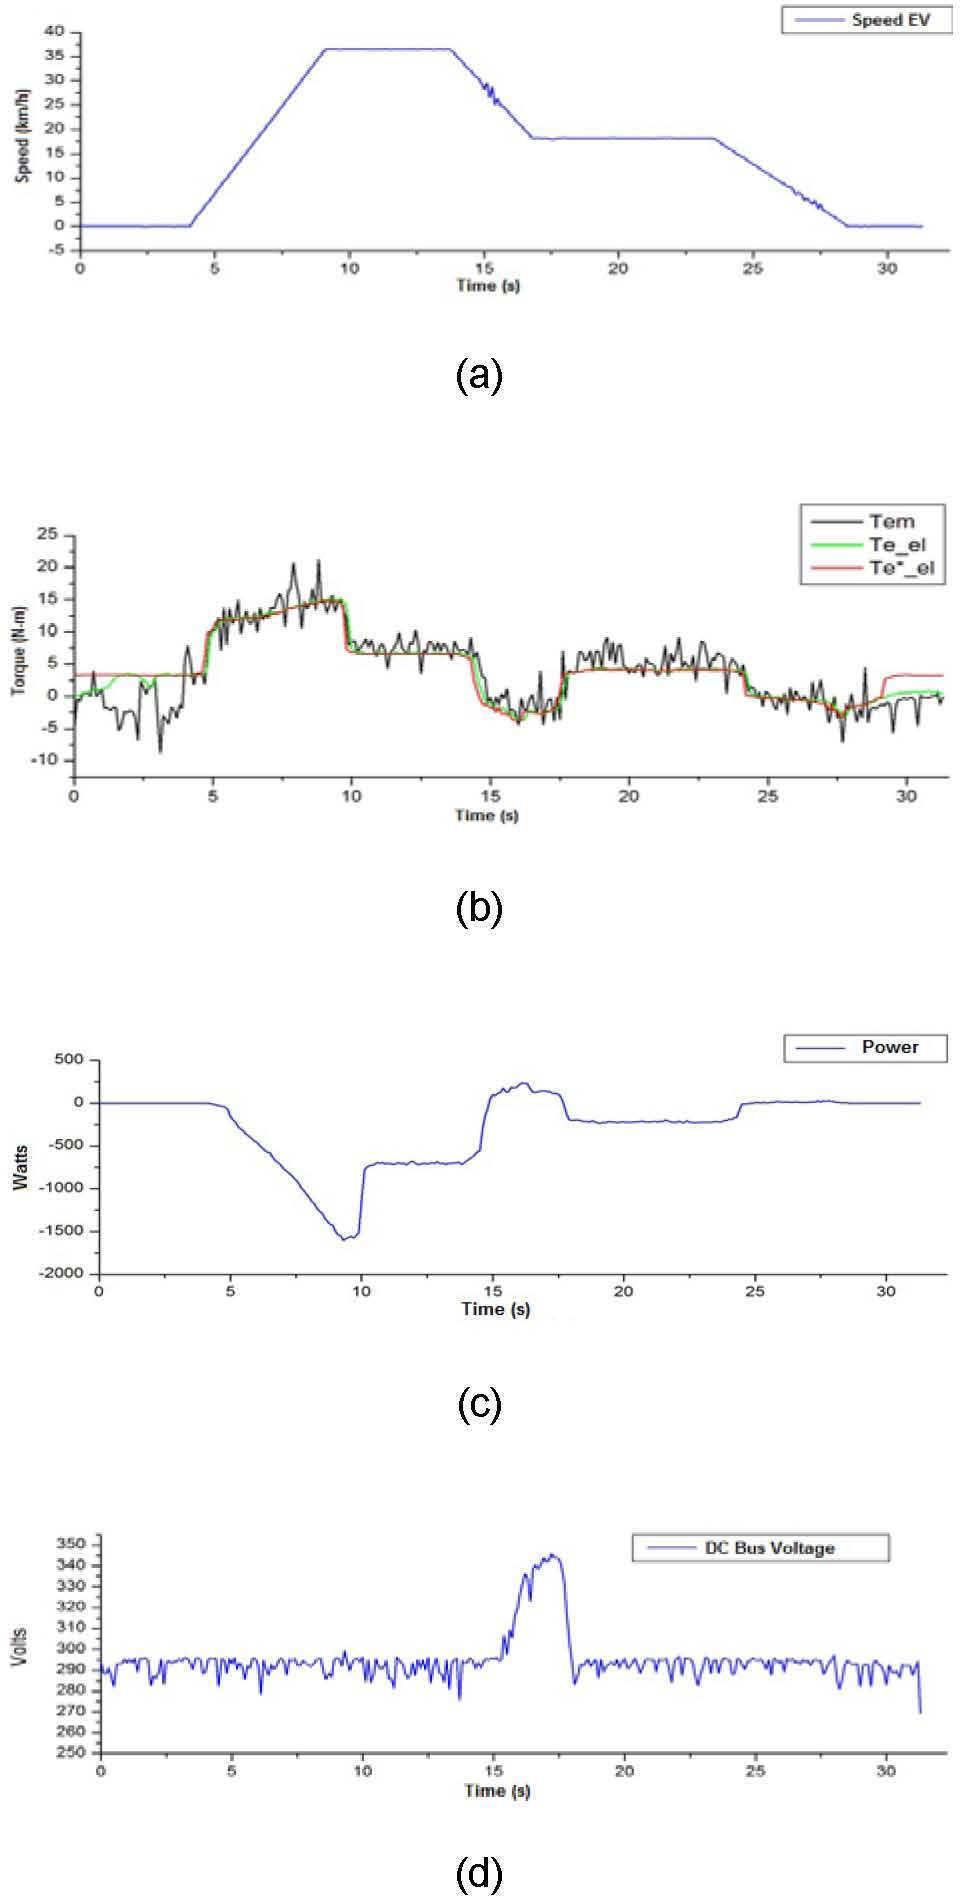 Design Commissioning And Testing Of An Electrodynamometer Based On Power Factor Meter Electronic Instrumentation Experimental Results A Ev Speed Km H B Electromagnetic Torque